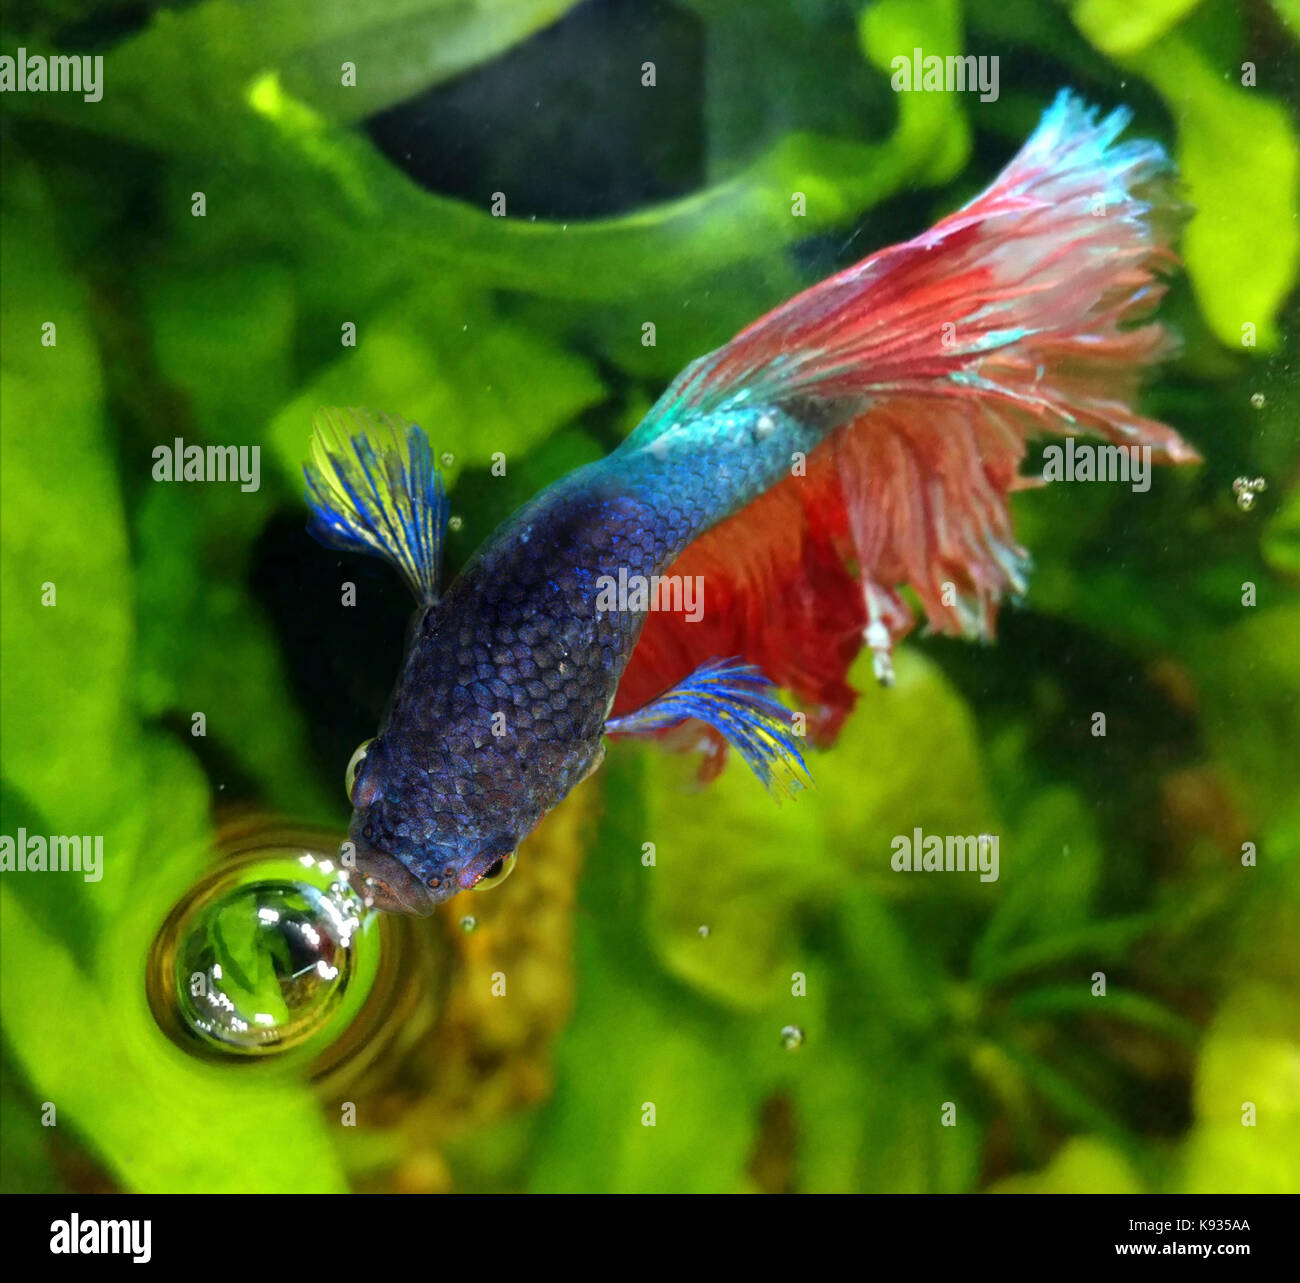 Siamese fighting fish, Betta splendens. Male breathing air at the surface. Those fish possess an head internal organ, - Stock Image